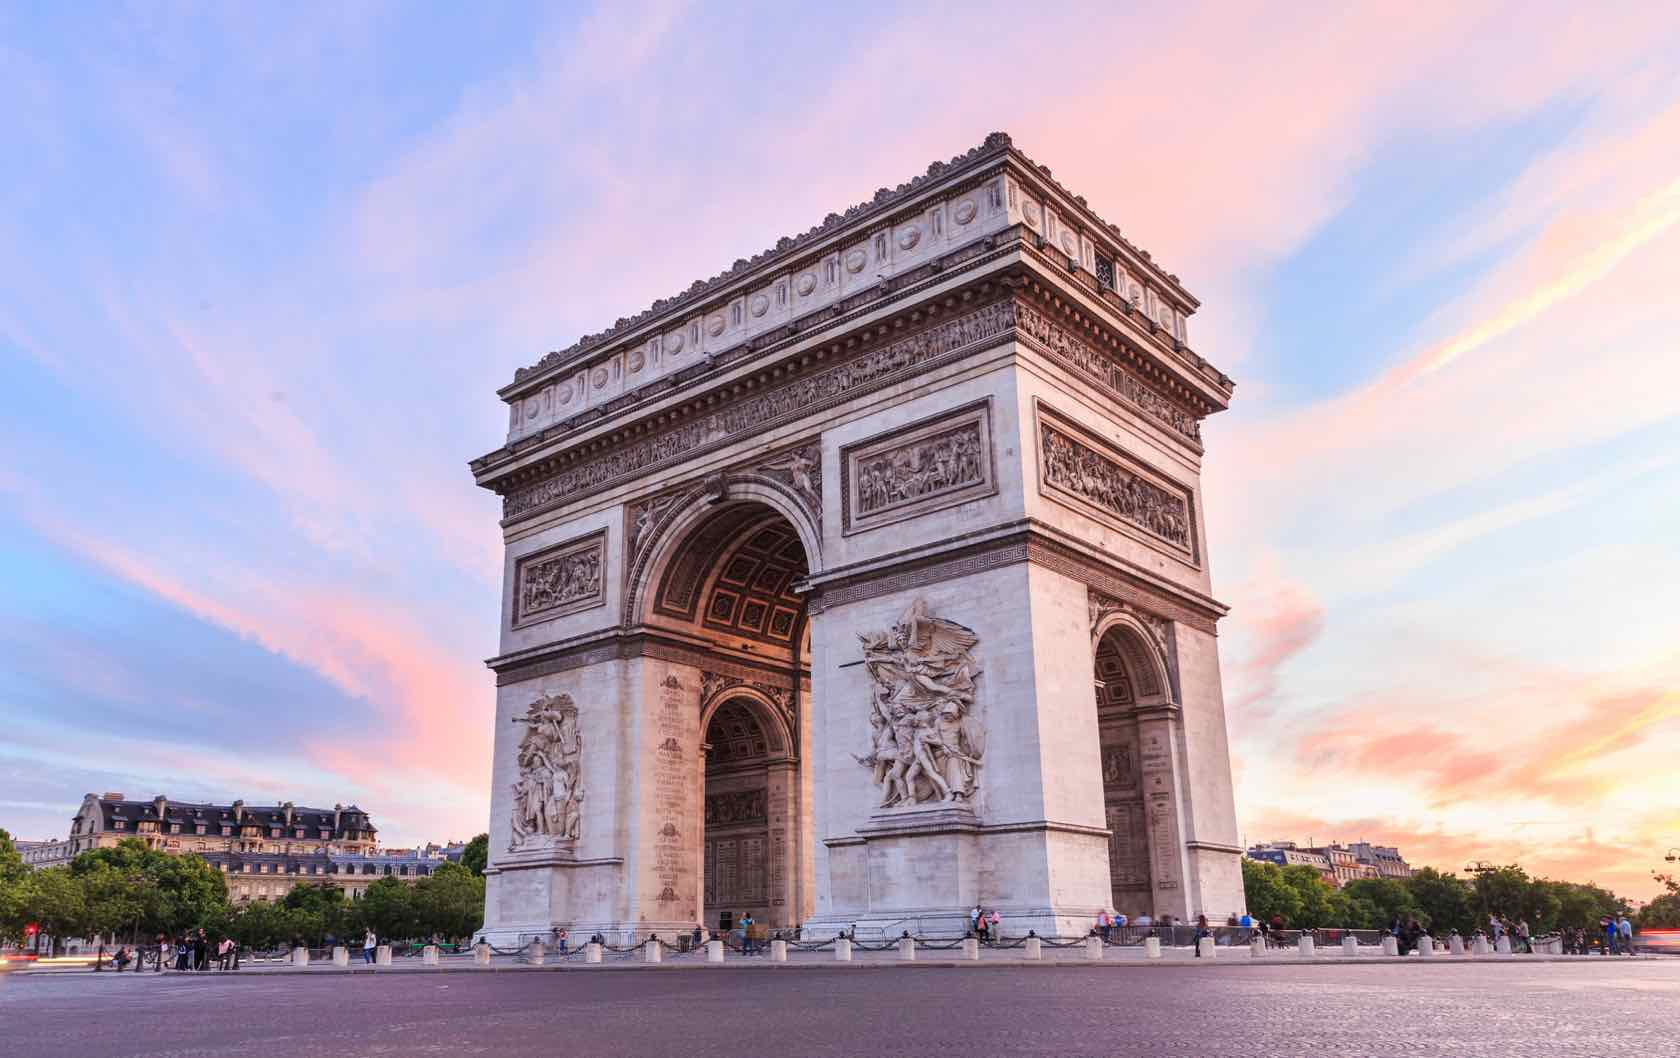 Arc de Triomphe visit France in 2020